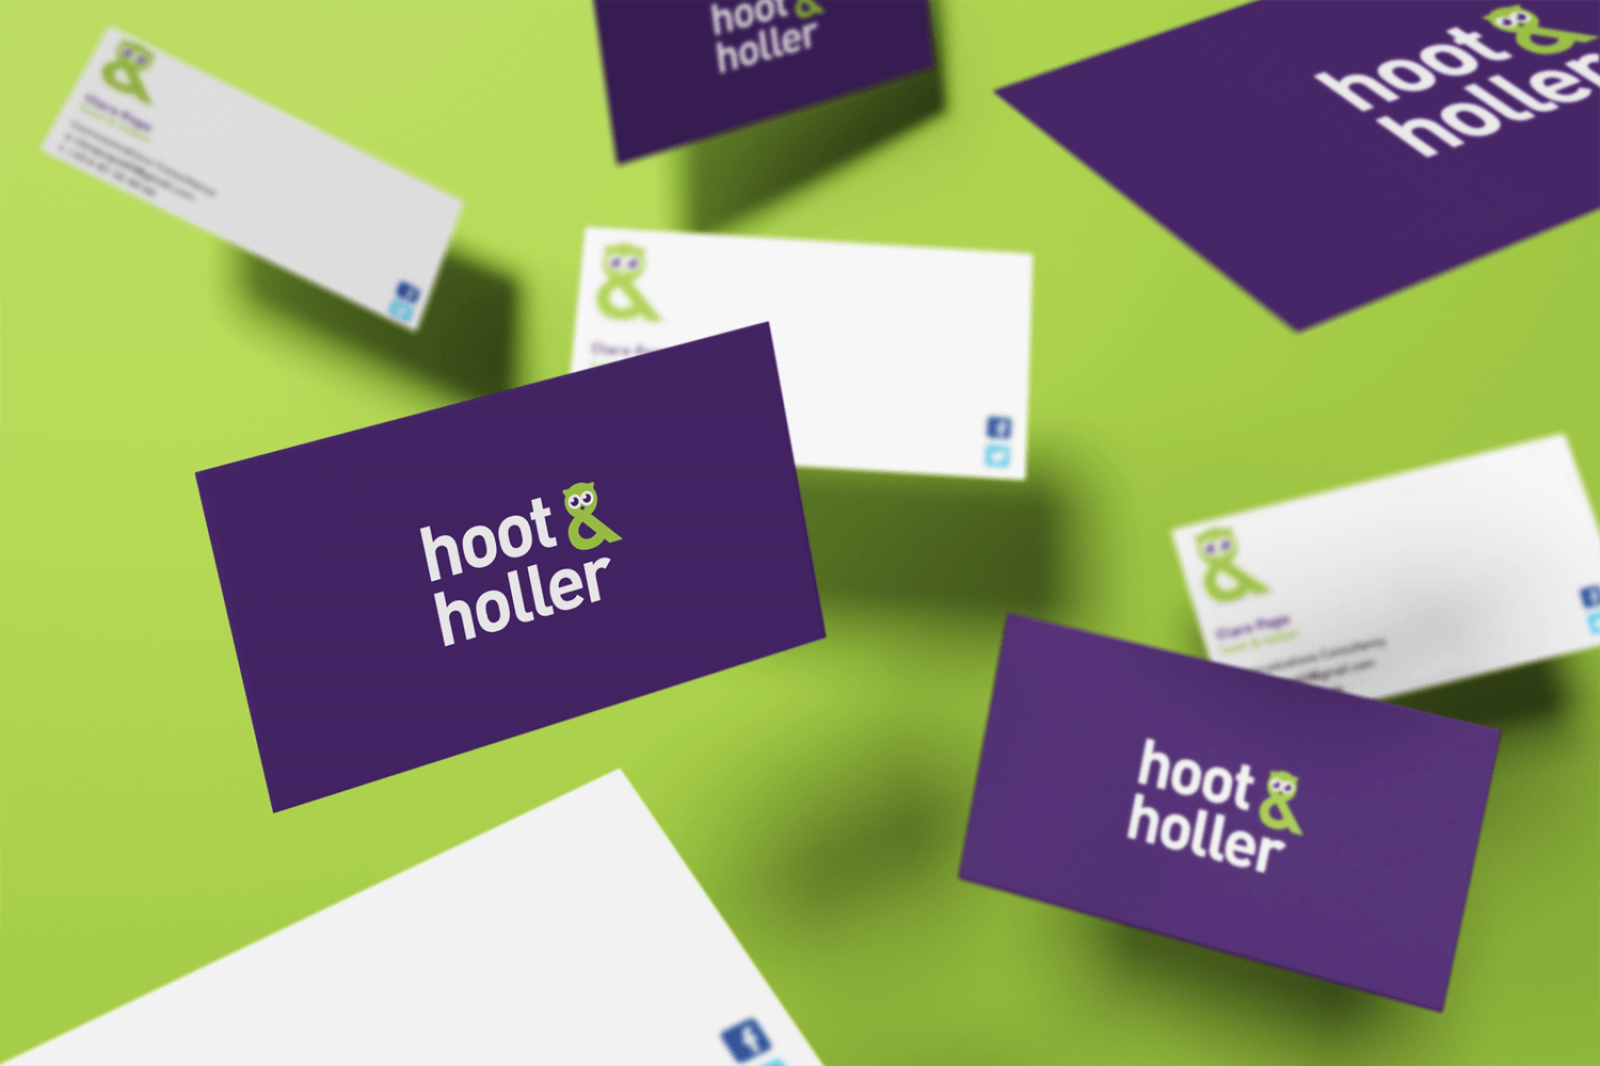 Business-Hoot-business-card-corporate-identity-agency-graphic-design-canterbury.png